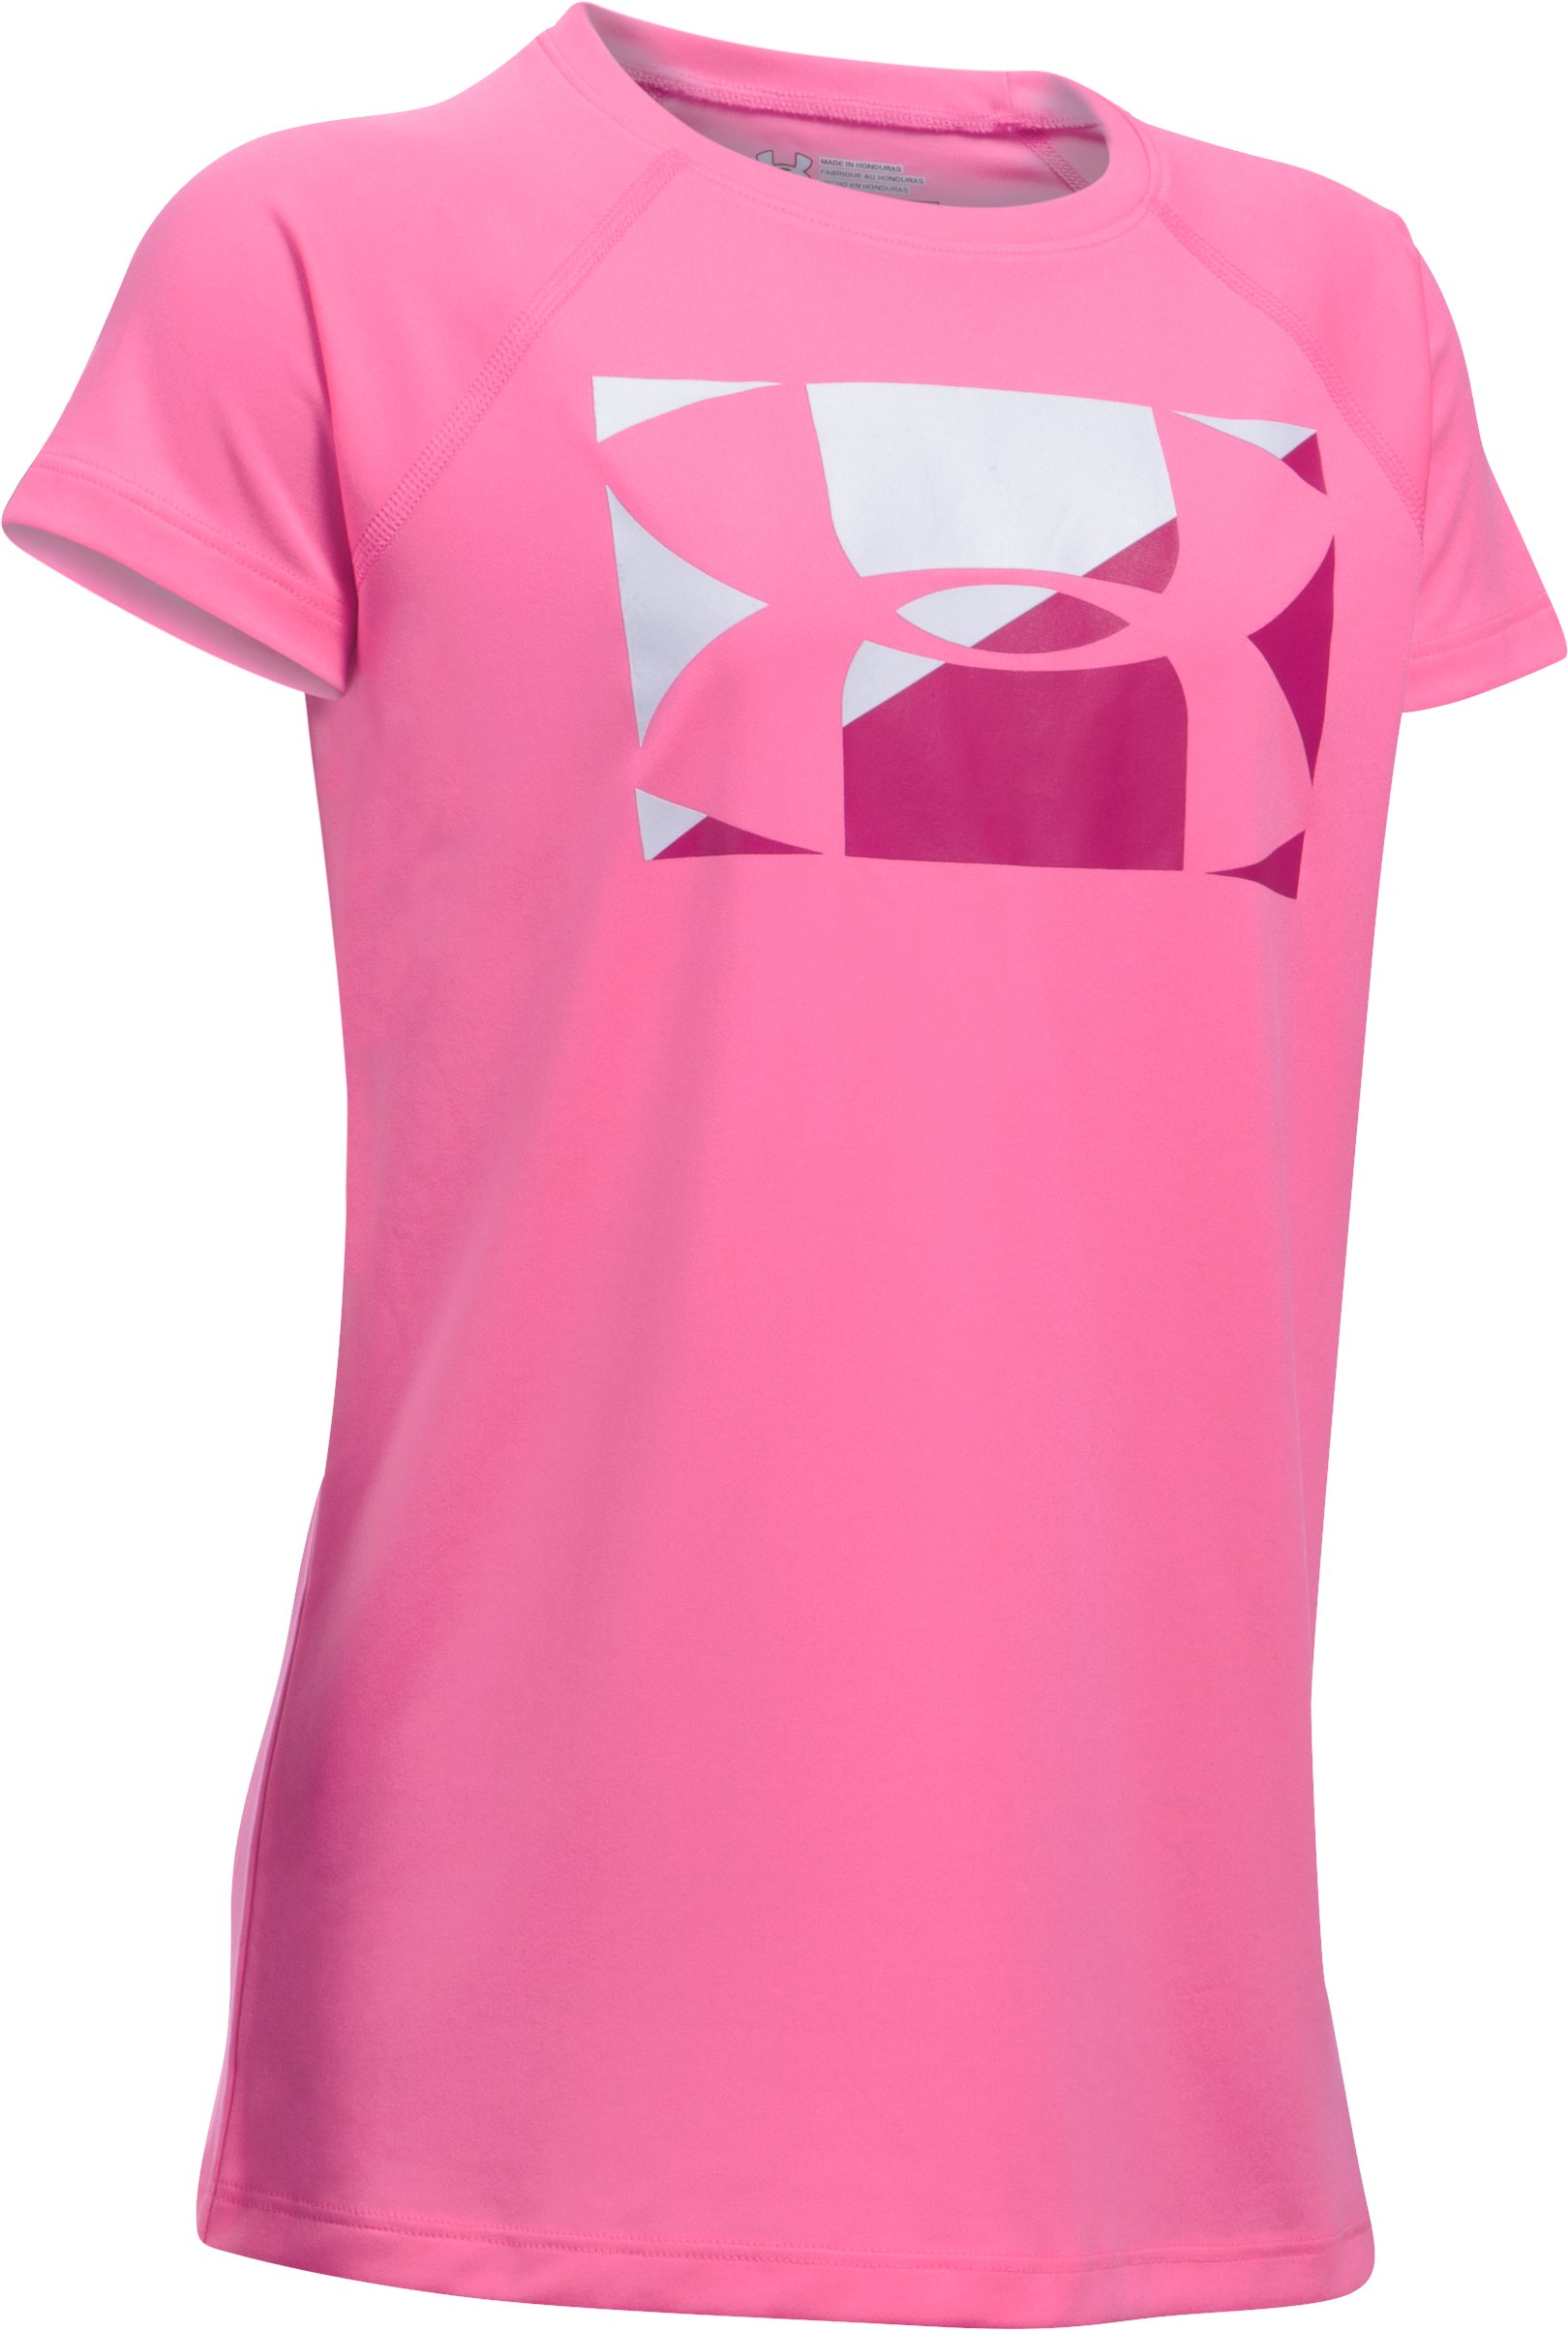 Girls' UA Big Logo T-Shirt, PINK PUNK, undefined